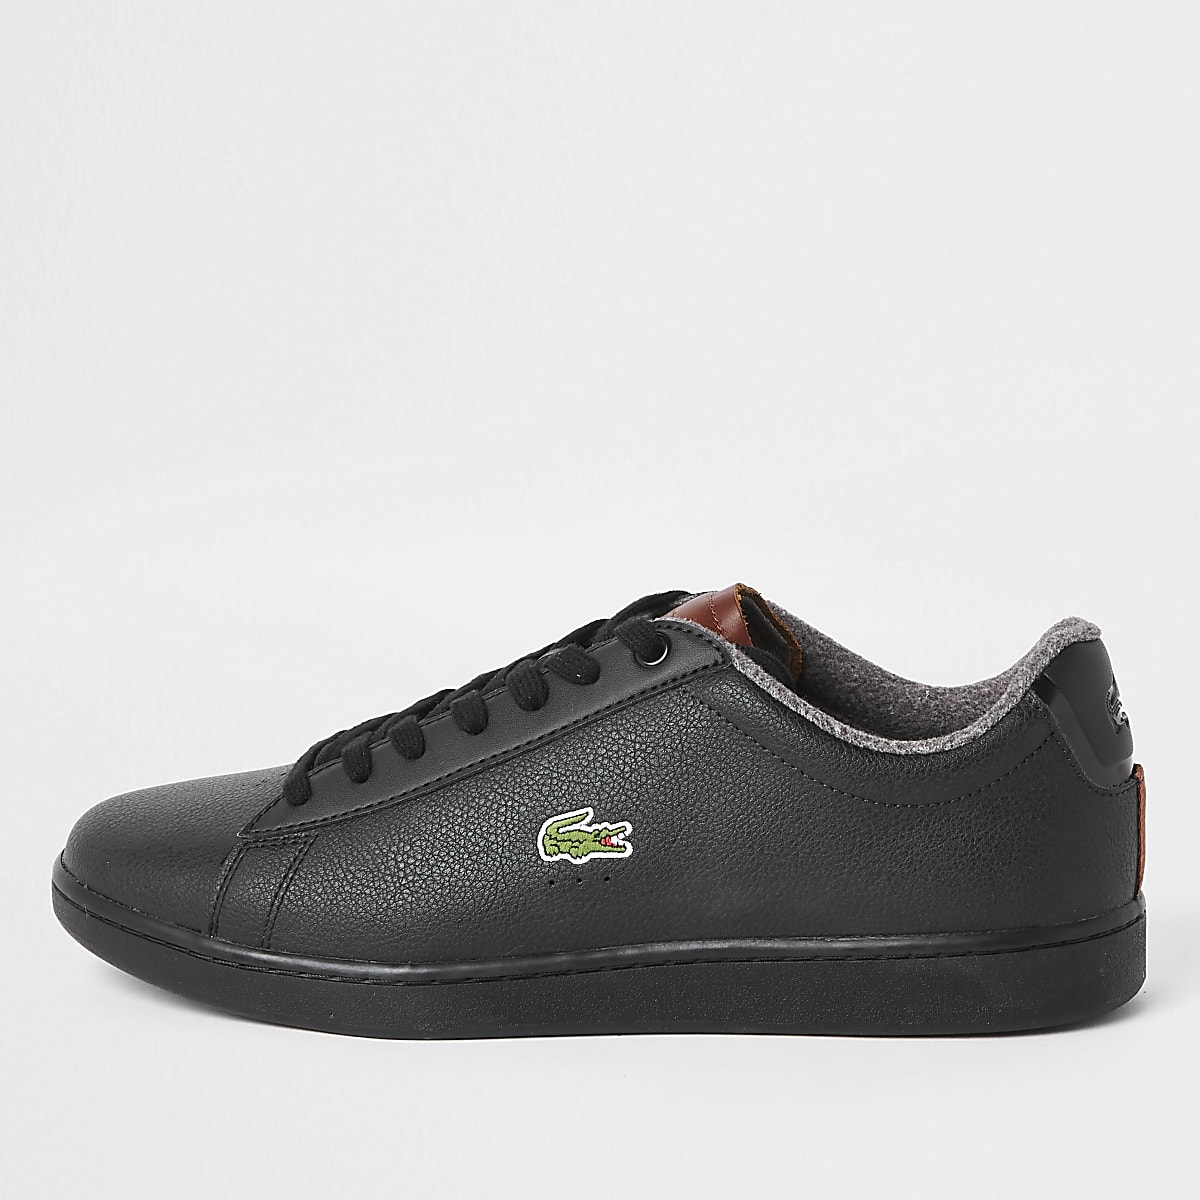 Lacoste leather black court lace-up trainers